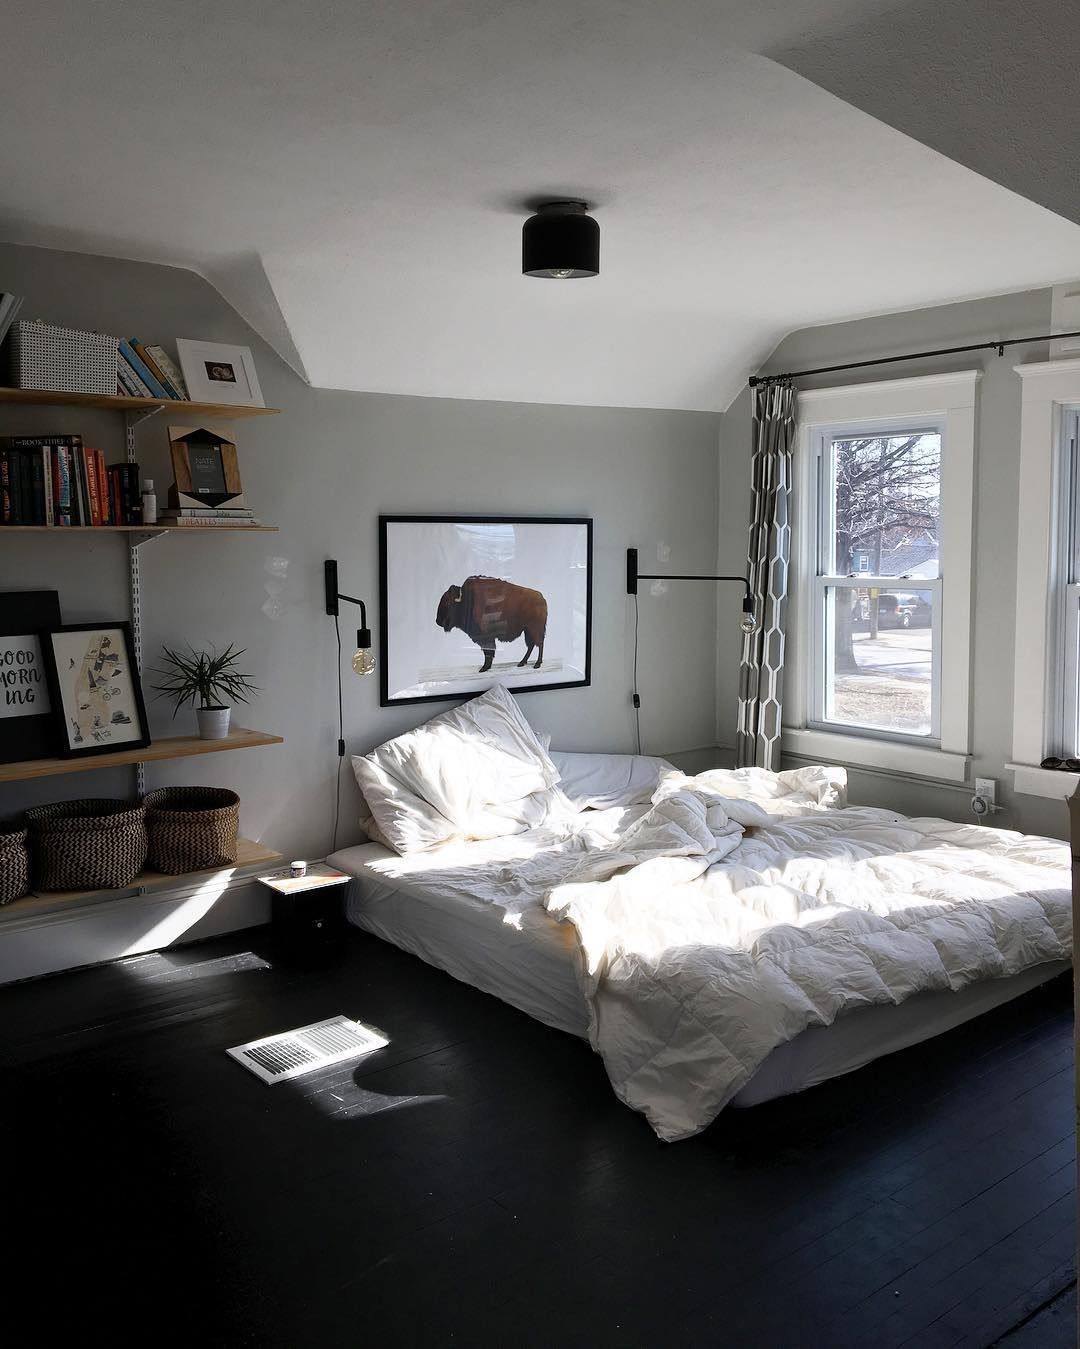 8 Reasons You Should Put Your Bed On The Floor Comfy Bedroom